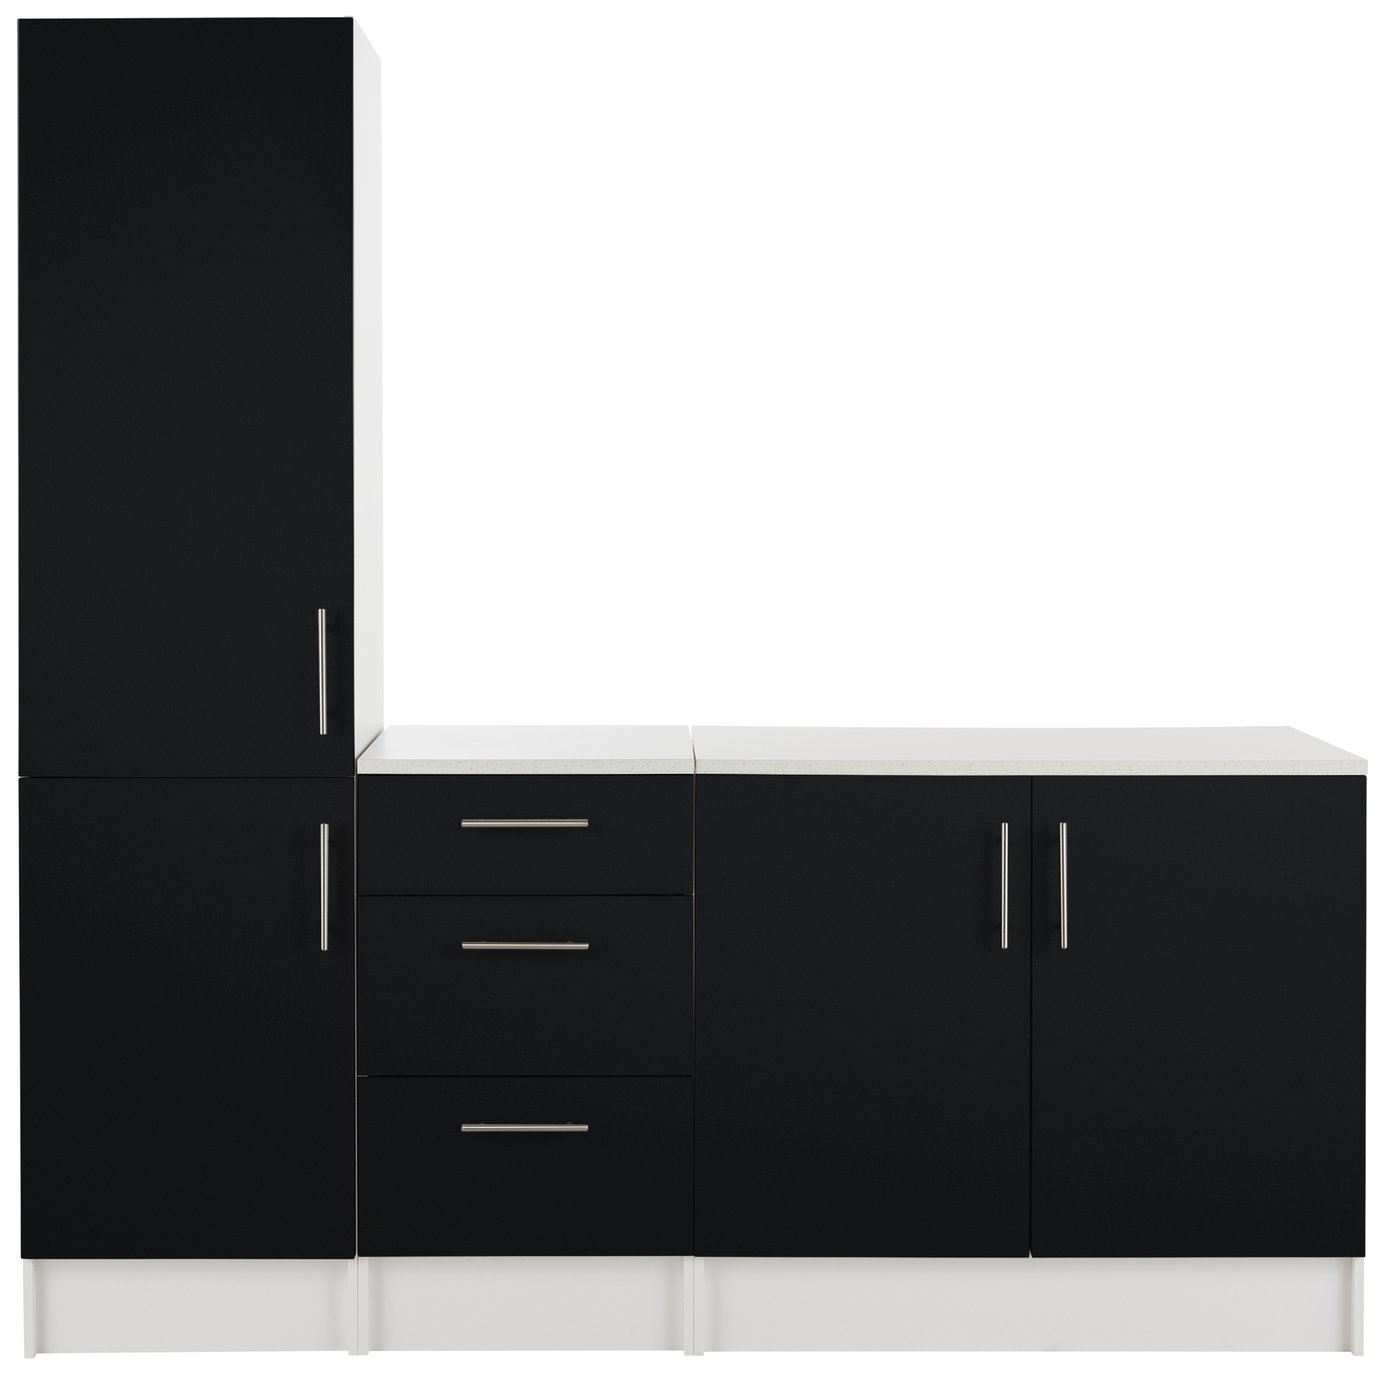 Athina - 3 Piece - Fitted - Kitchen Unit Package - Black